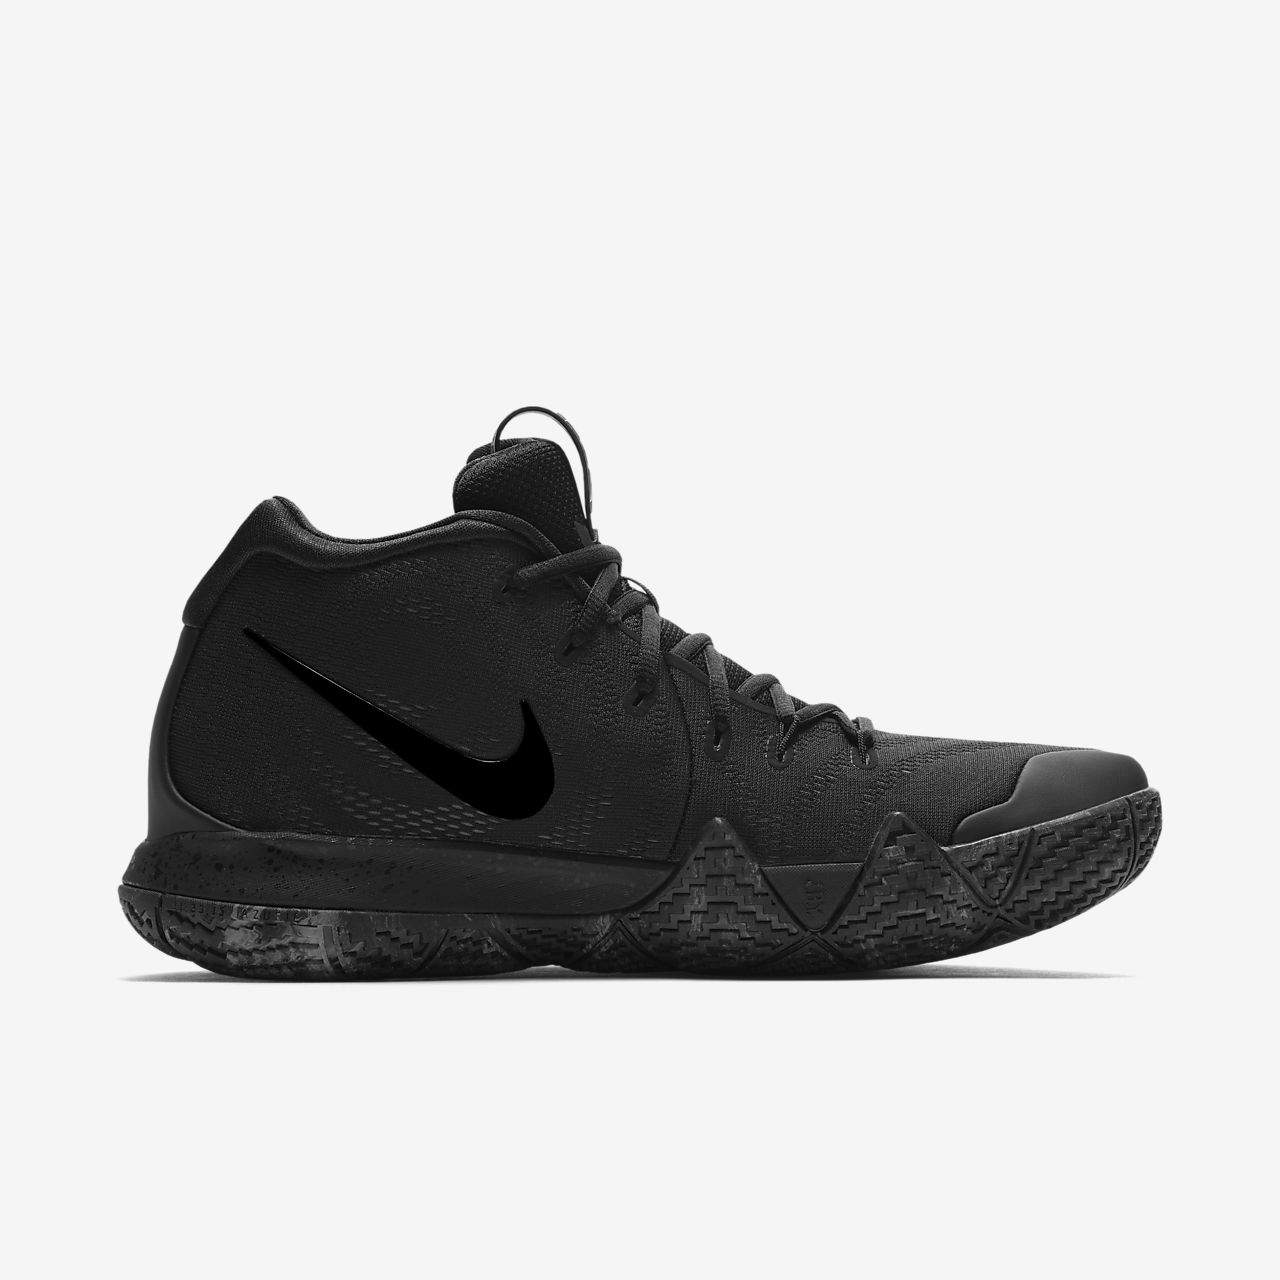 558de8899868 Low Resolution Kyrie 4 Basketball Shoe Kyrie 4 Basketball Shoe